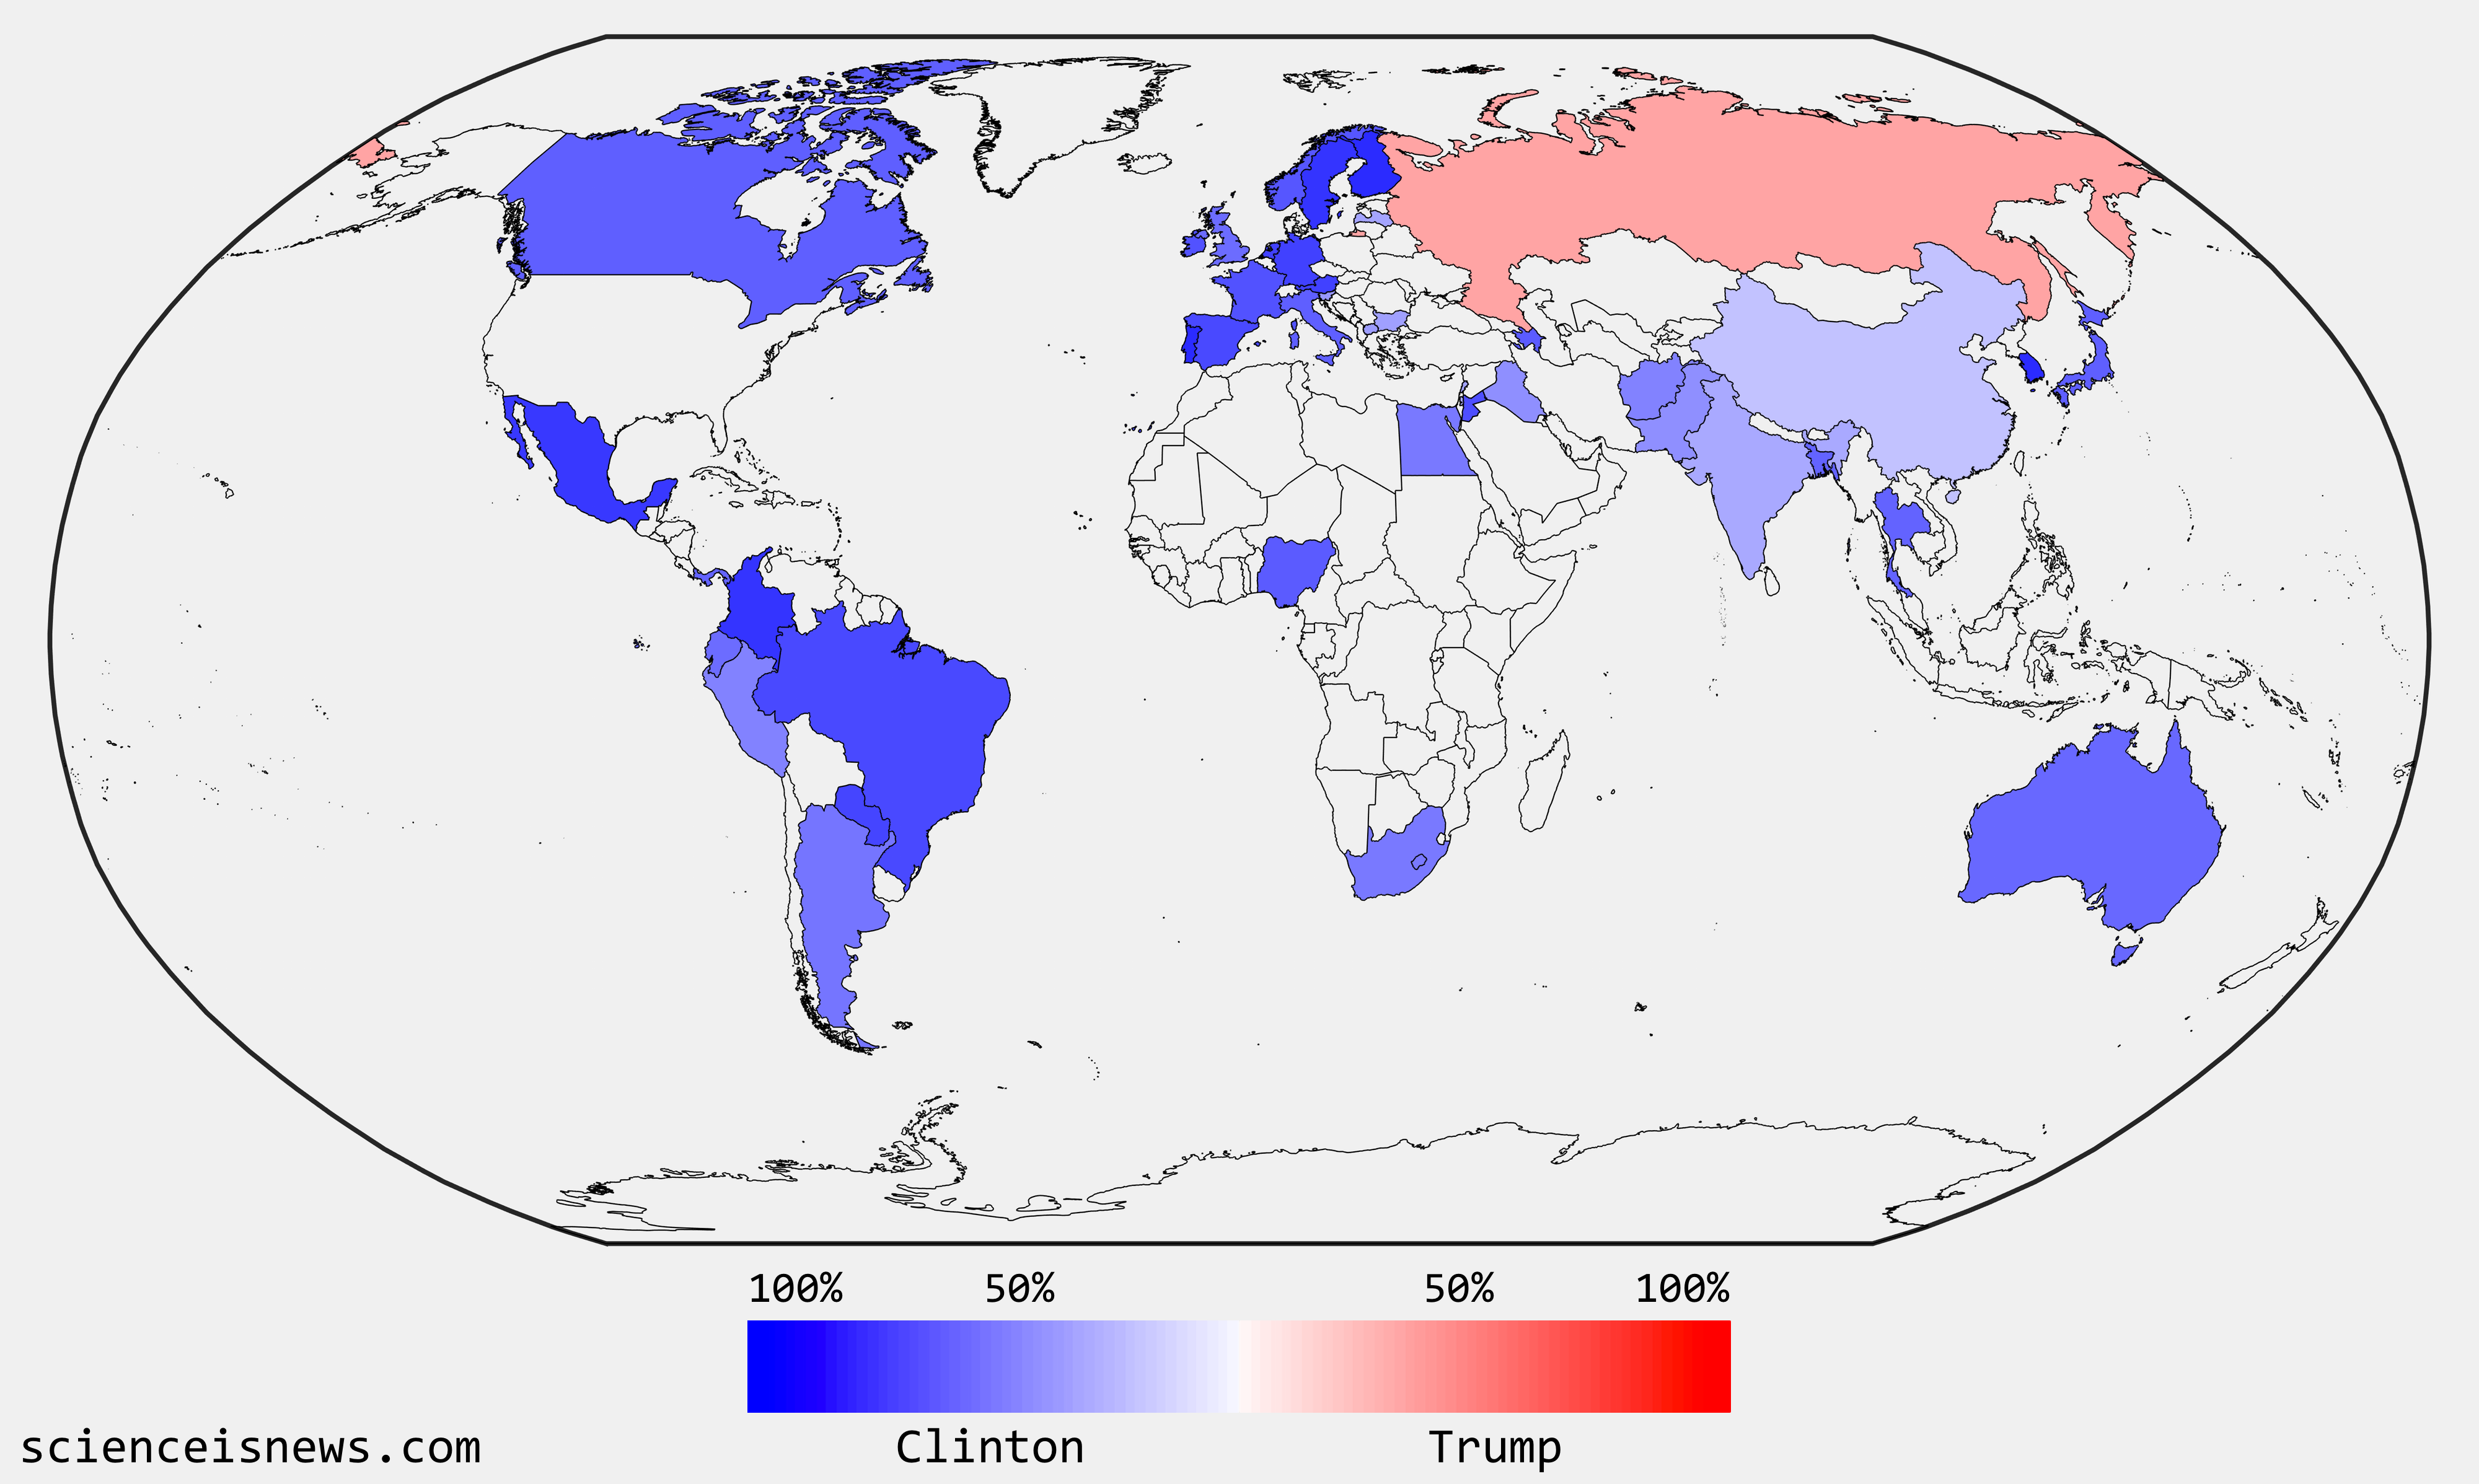 The World To The Polls Scienceisnews - Us Polls Map Of Country